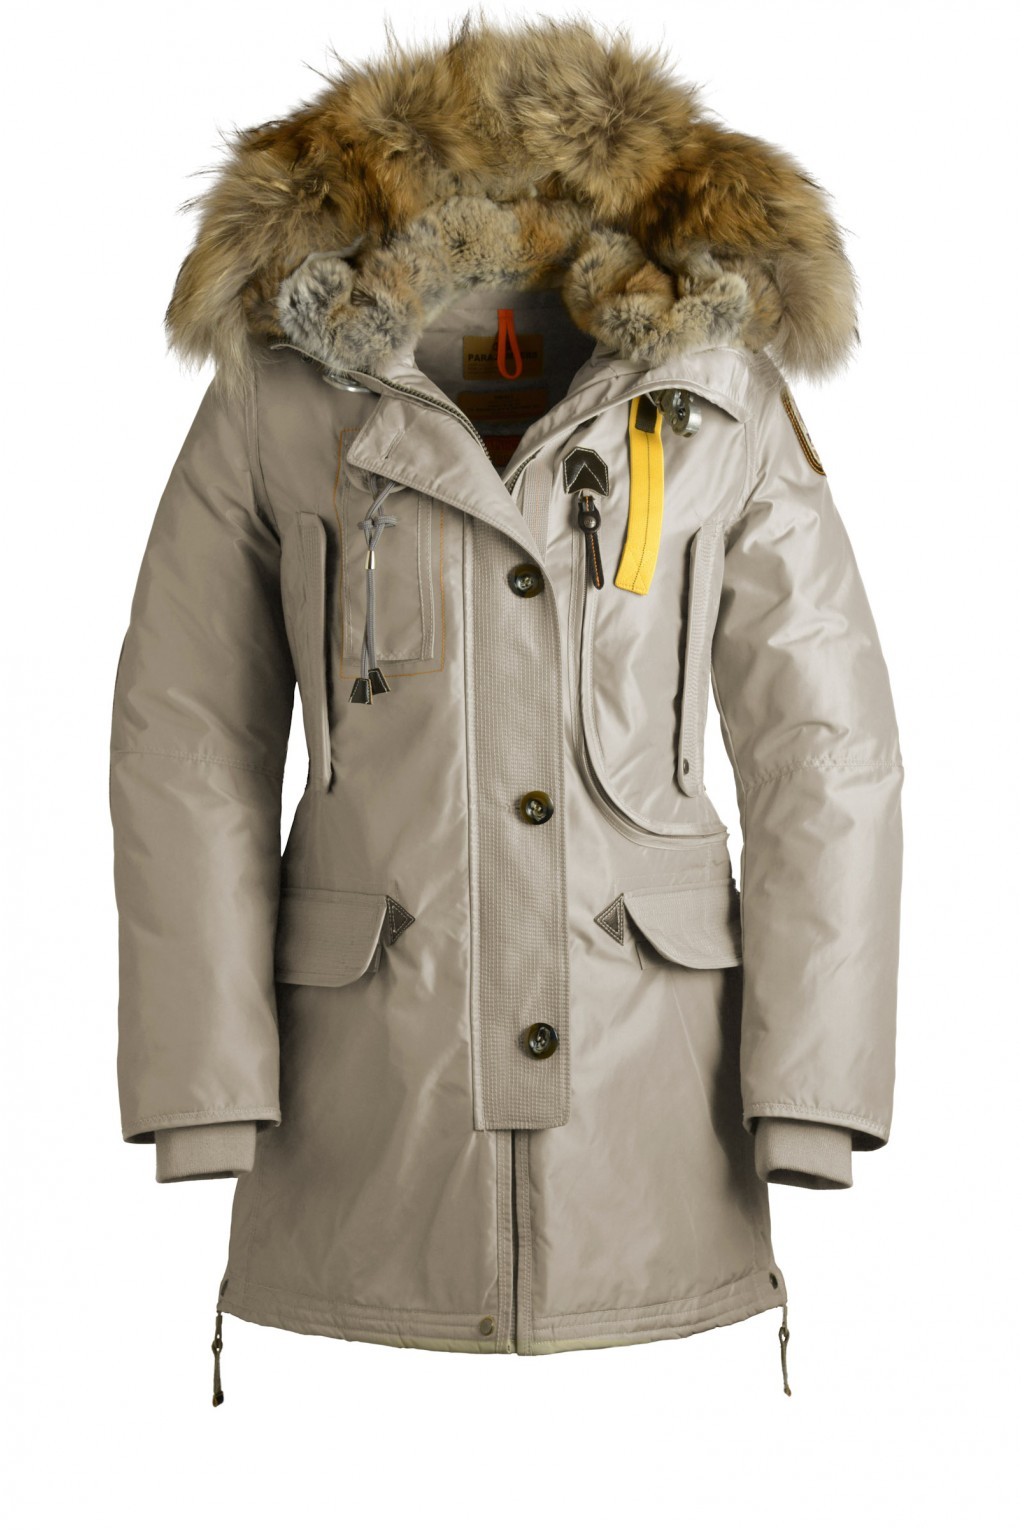 parajumpers KODIAK woman outerwear Cappuccino